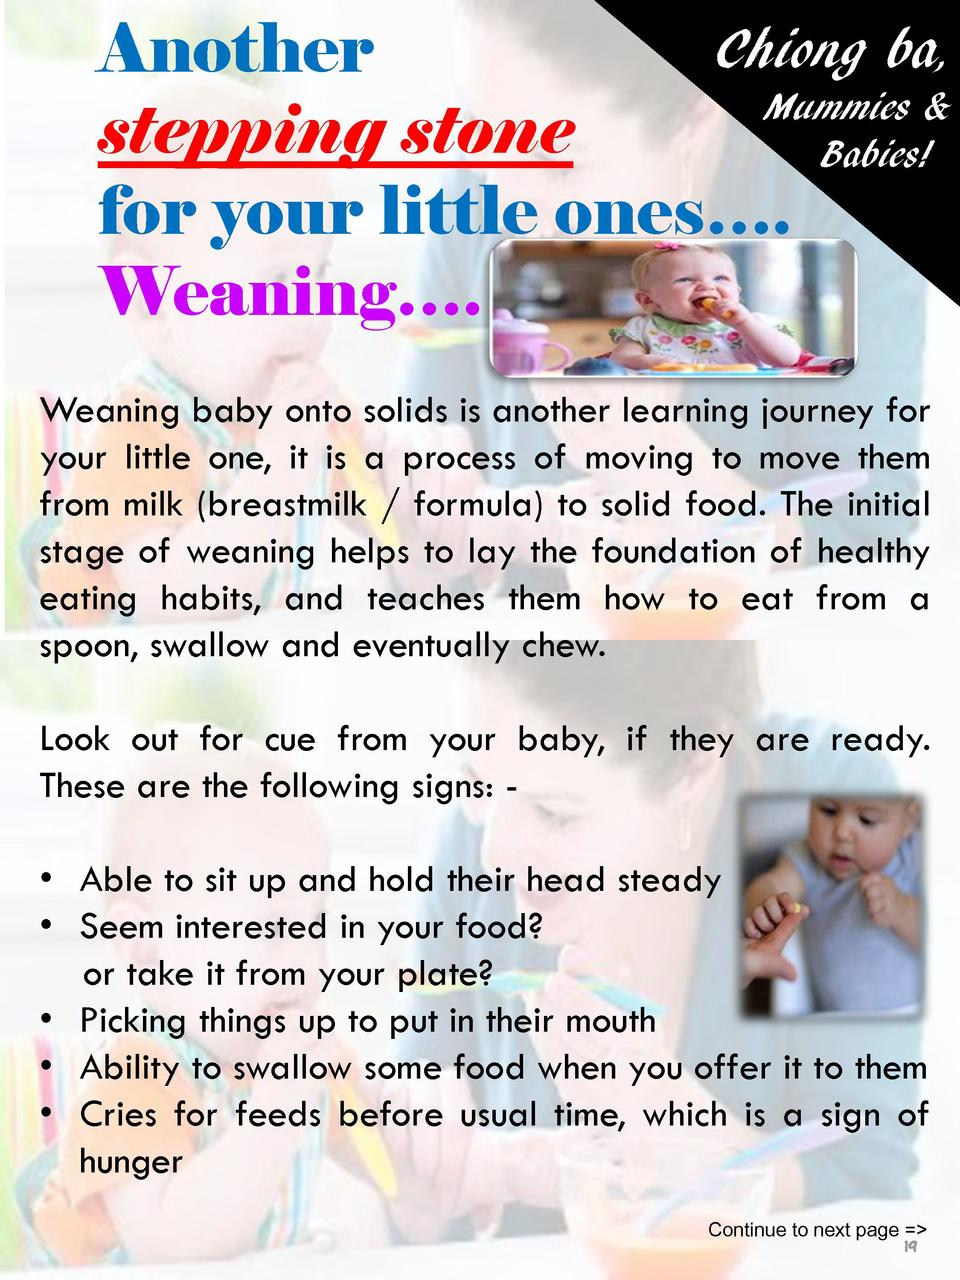 Chiong ba, Another Mummies   stepping stone Babies  for your little ones   . Weaning   . Weaning baby onto solids is anoth...